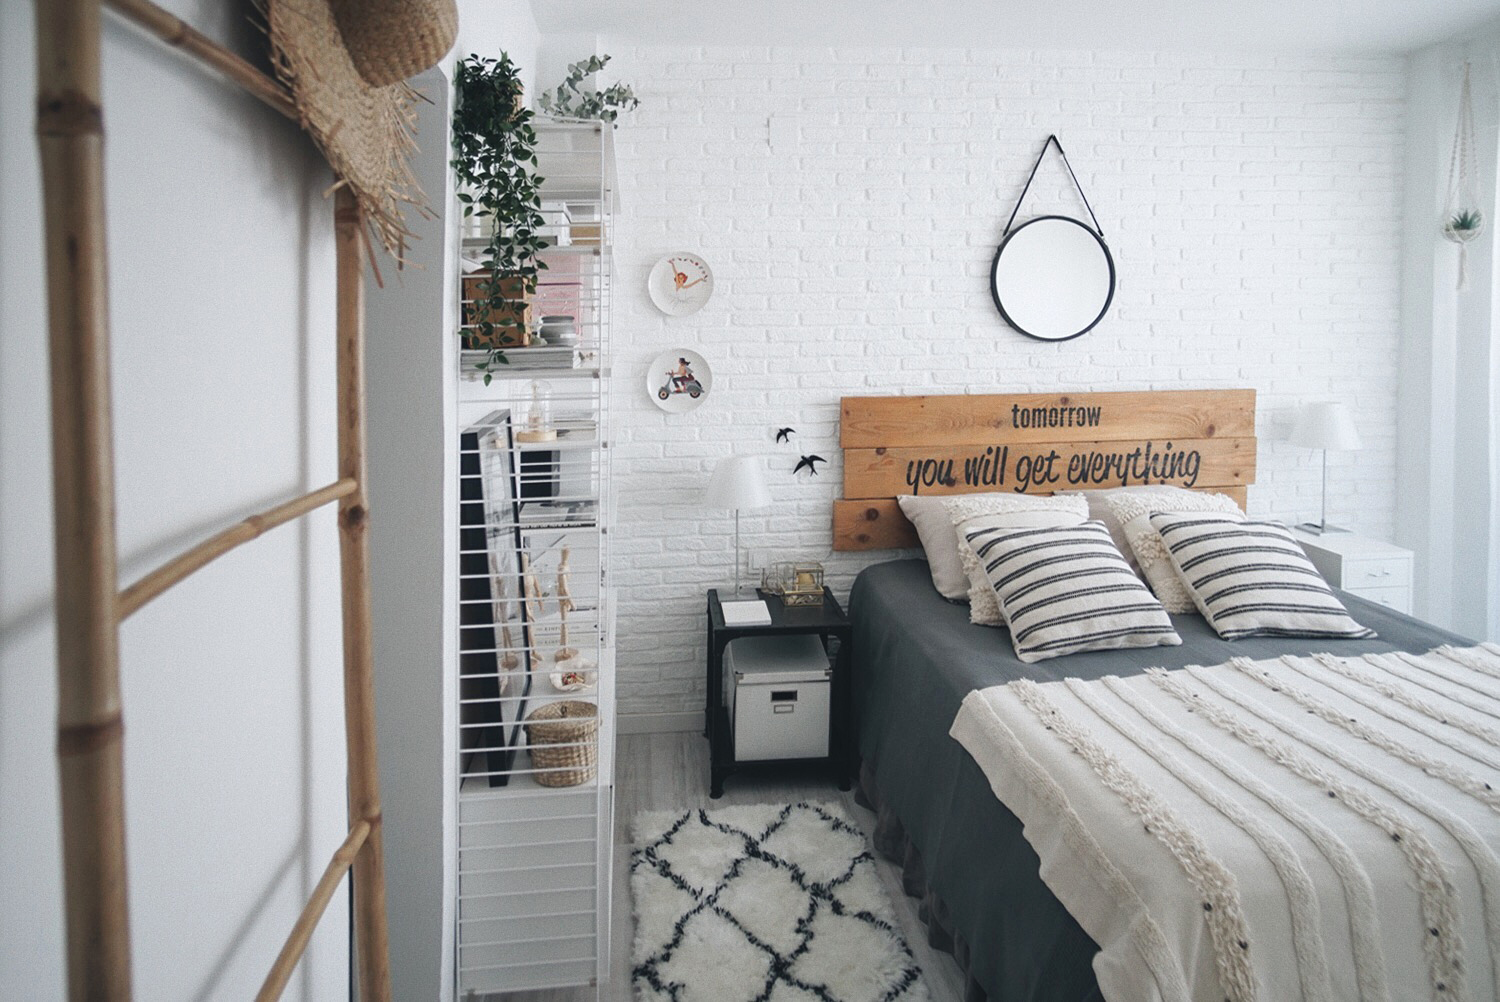 21 2 - MD ROOM